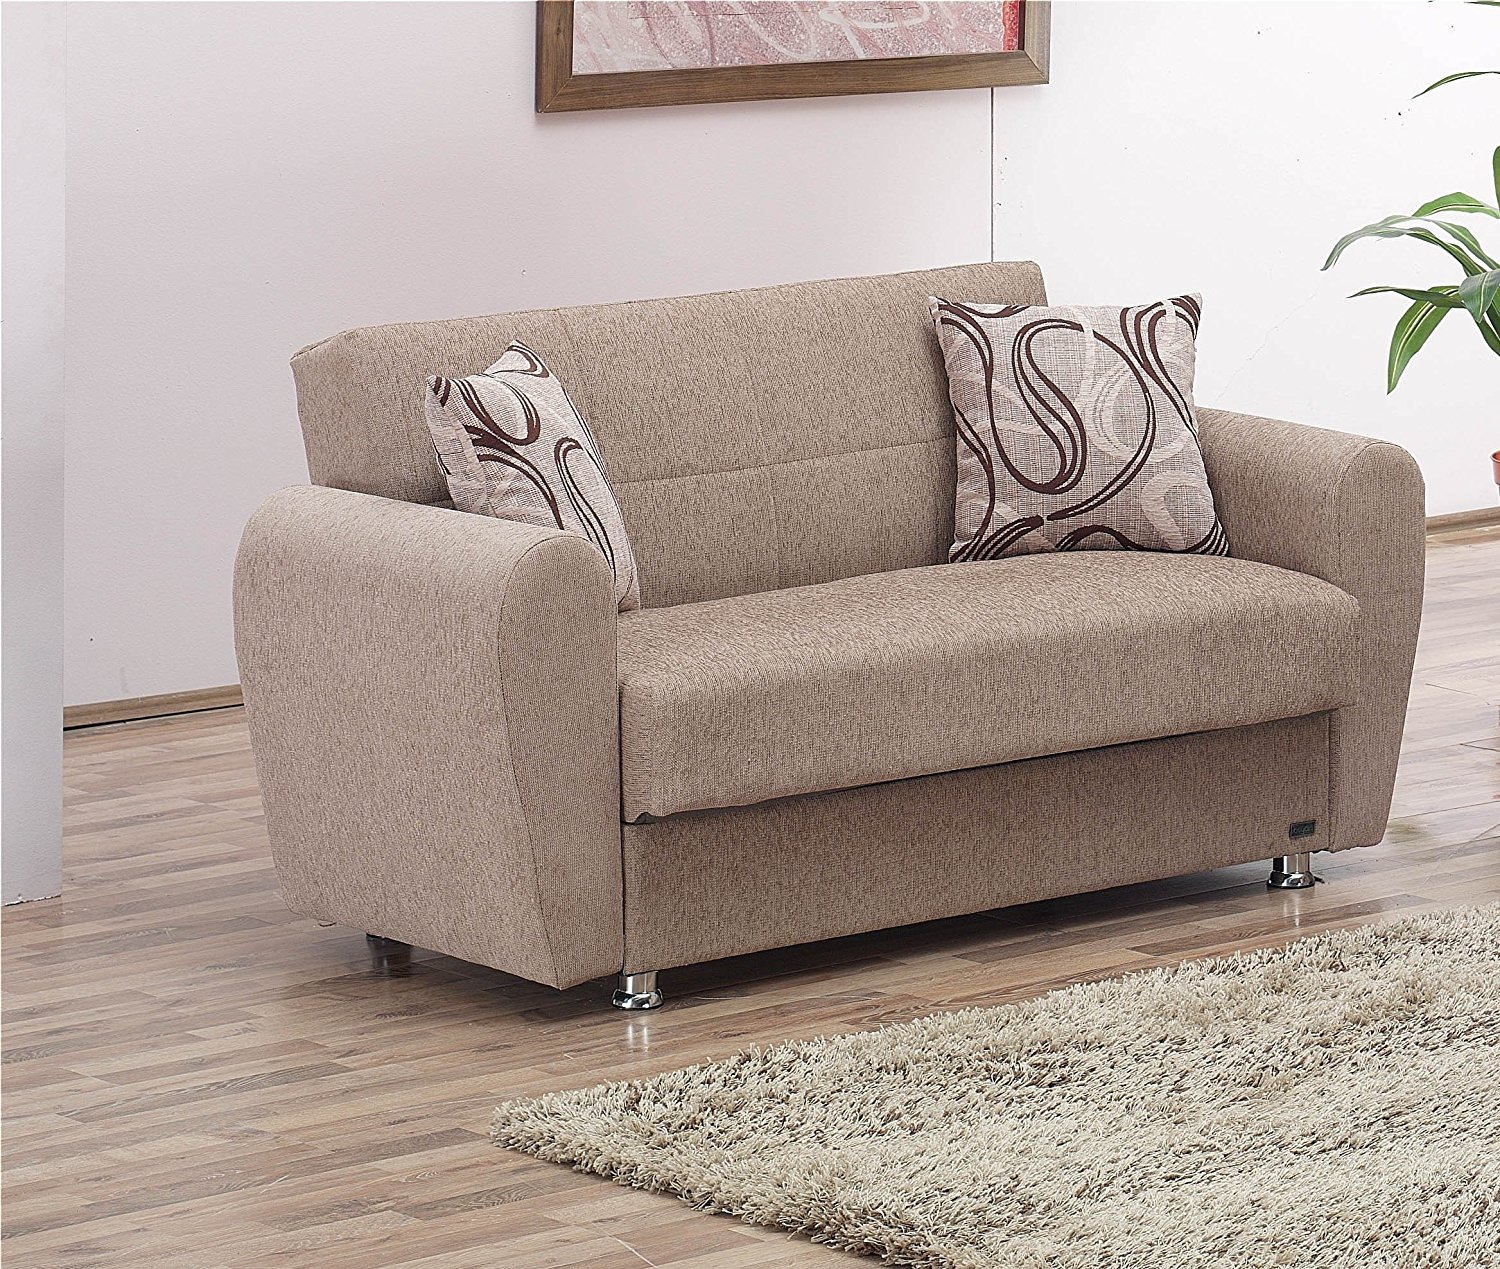 Cool Cheap Convertible Loveseat Find Convertible Loveseat Deals Pabps2019 Chair Design Images Pabps2019Com